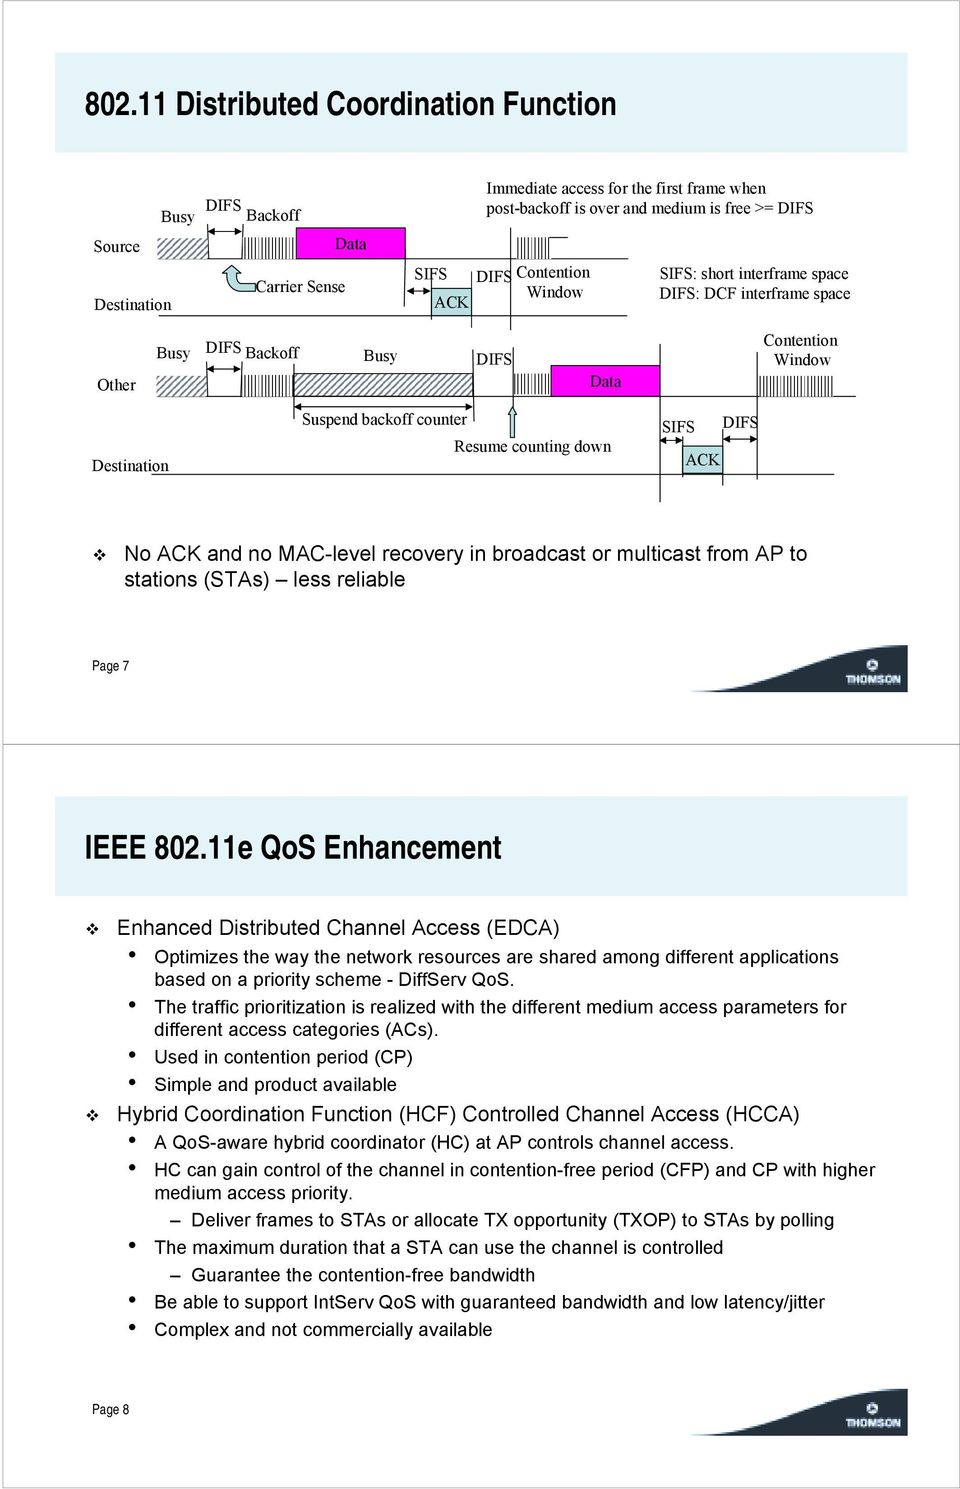 No ACK and no MAC-level recovery in broadcast or multicast from AP to stations (STAs) less reliable Page 7 IEEE 802.11e QoS Enhancement!